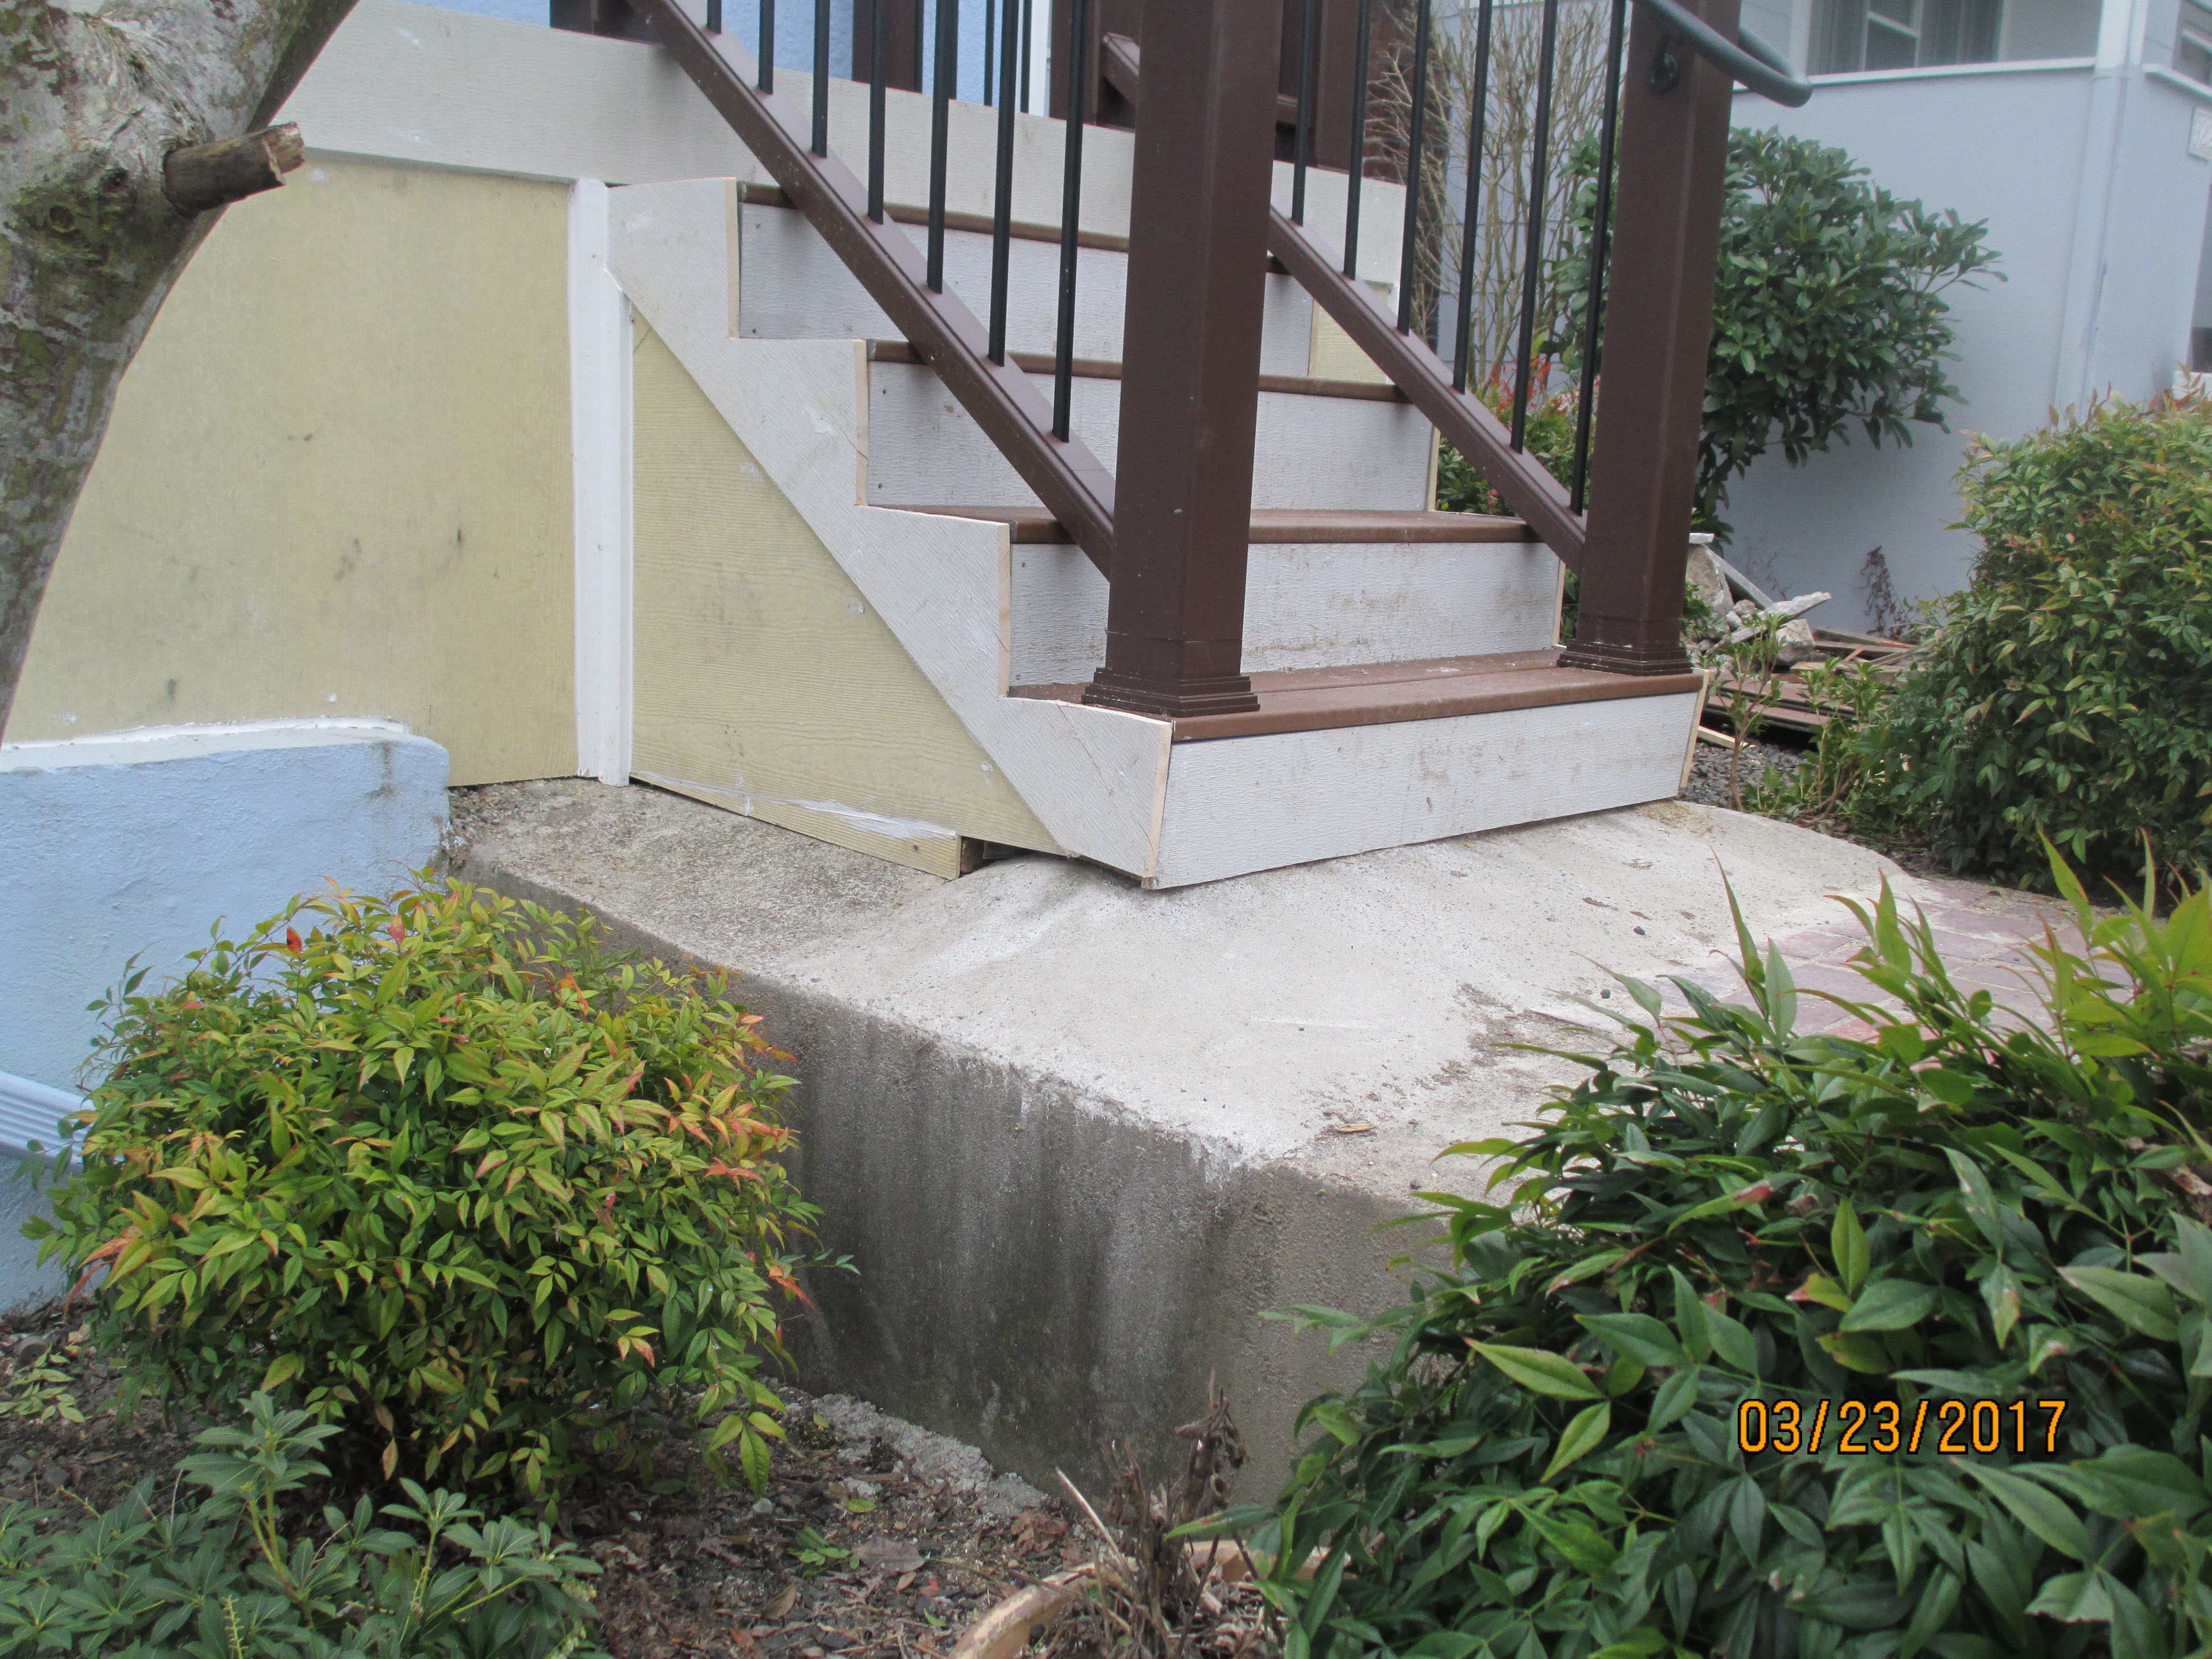 Finding The Ideal Rise And Run For Porch Steps – Orange County | Outside Steps For Seniors | Dreamstime | Stair Treads | Handrail | Stainless Steel | Walkway